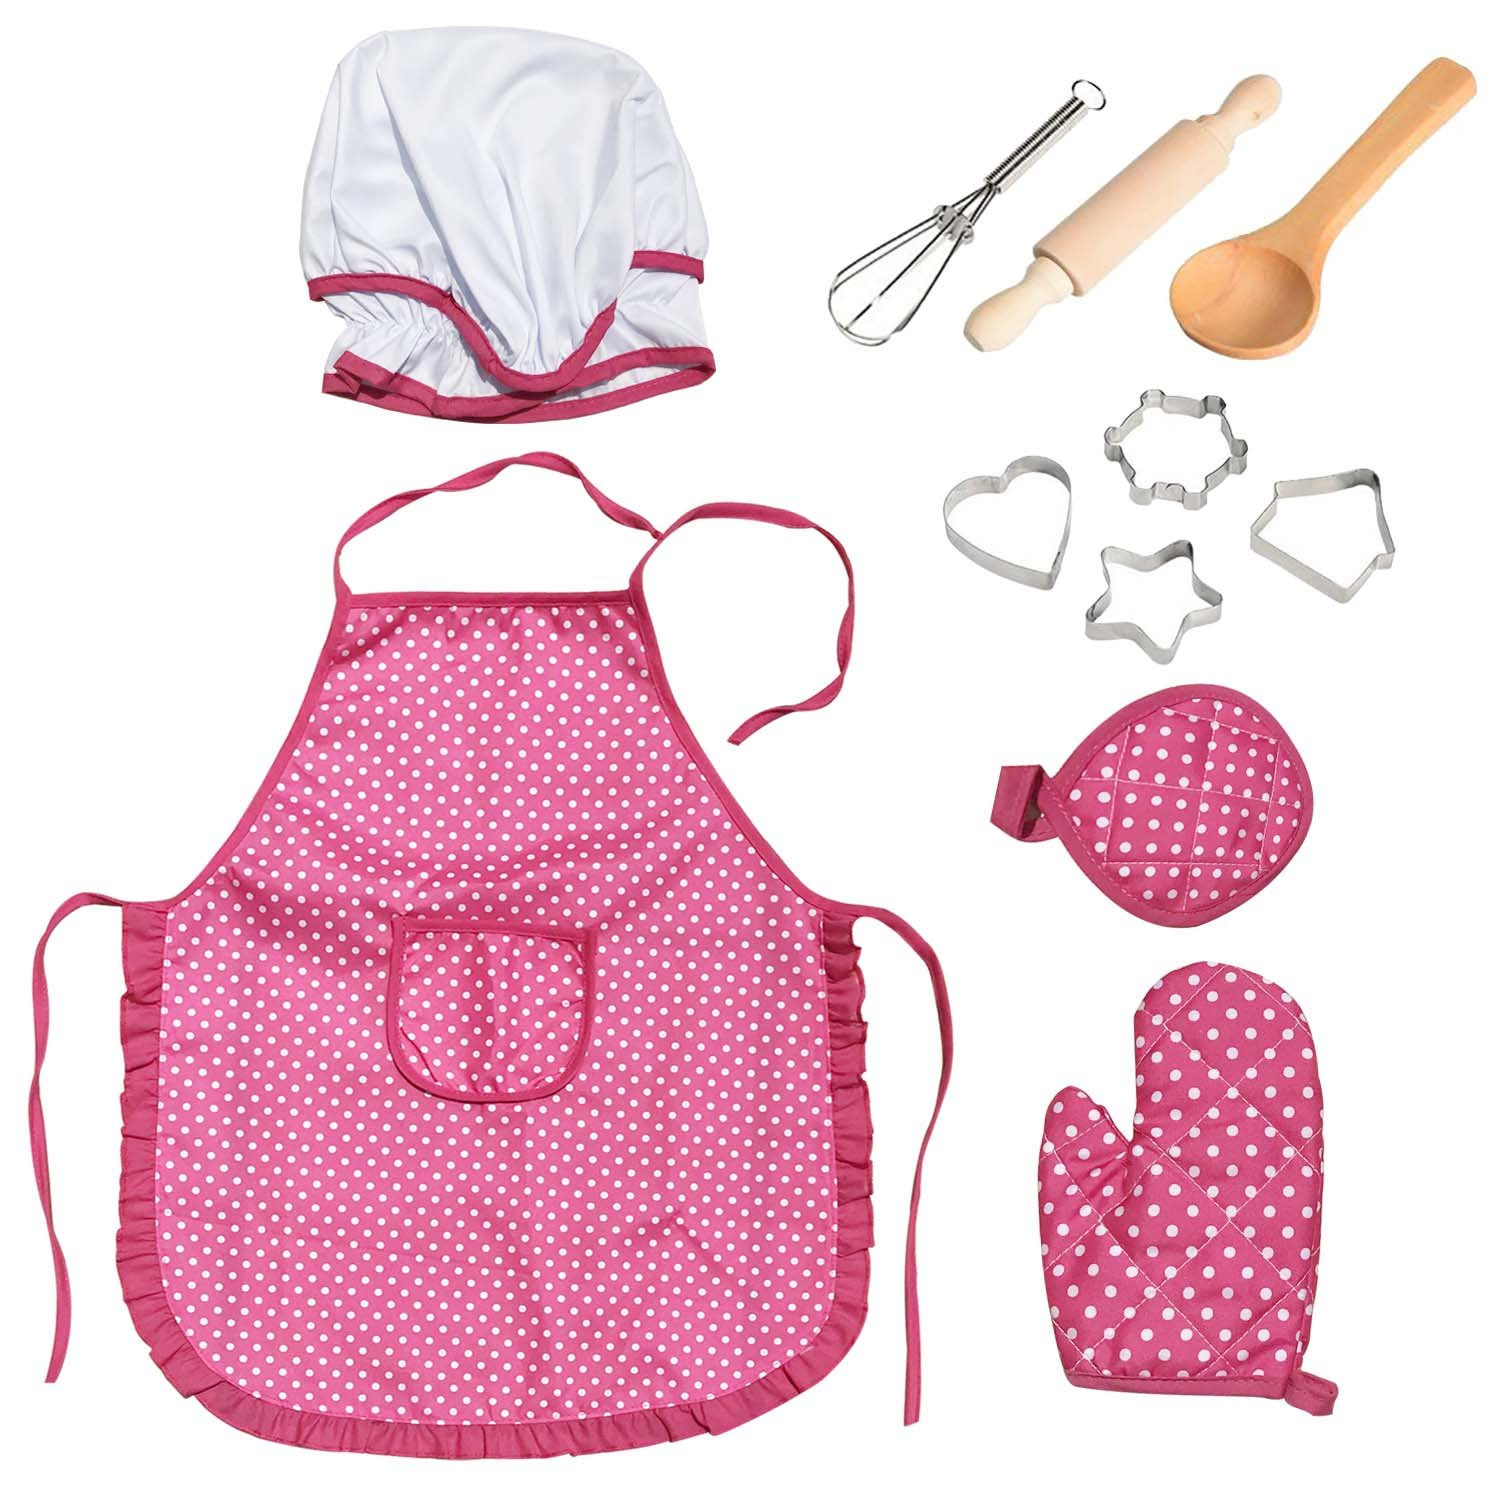 Anumit Kids Chef Set, Children Cooking Play Set, Girls Apron with Chef Hat, Cooking Mitt and Cookie Cutters for Toddler Career Role Play Children Pretend Play 11 Pcs Great Gift